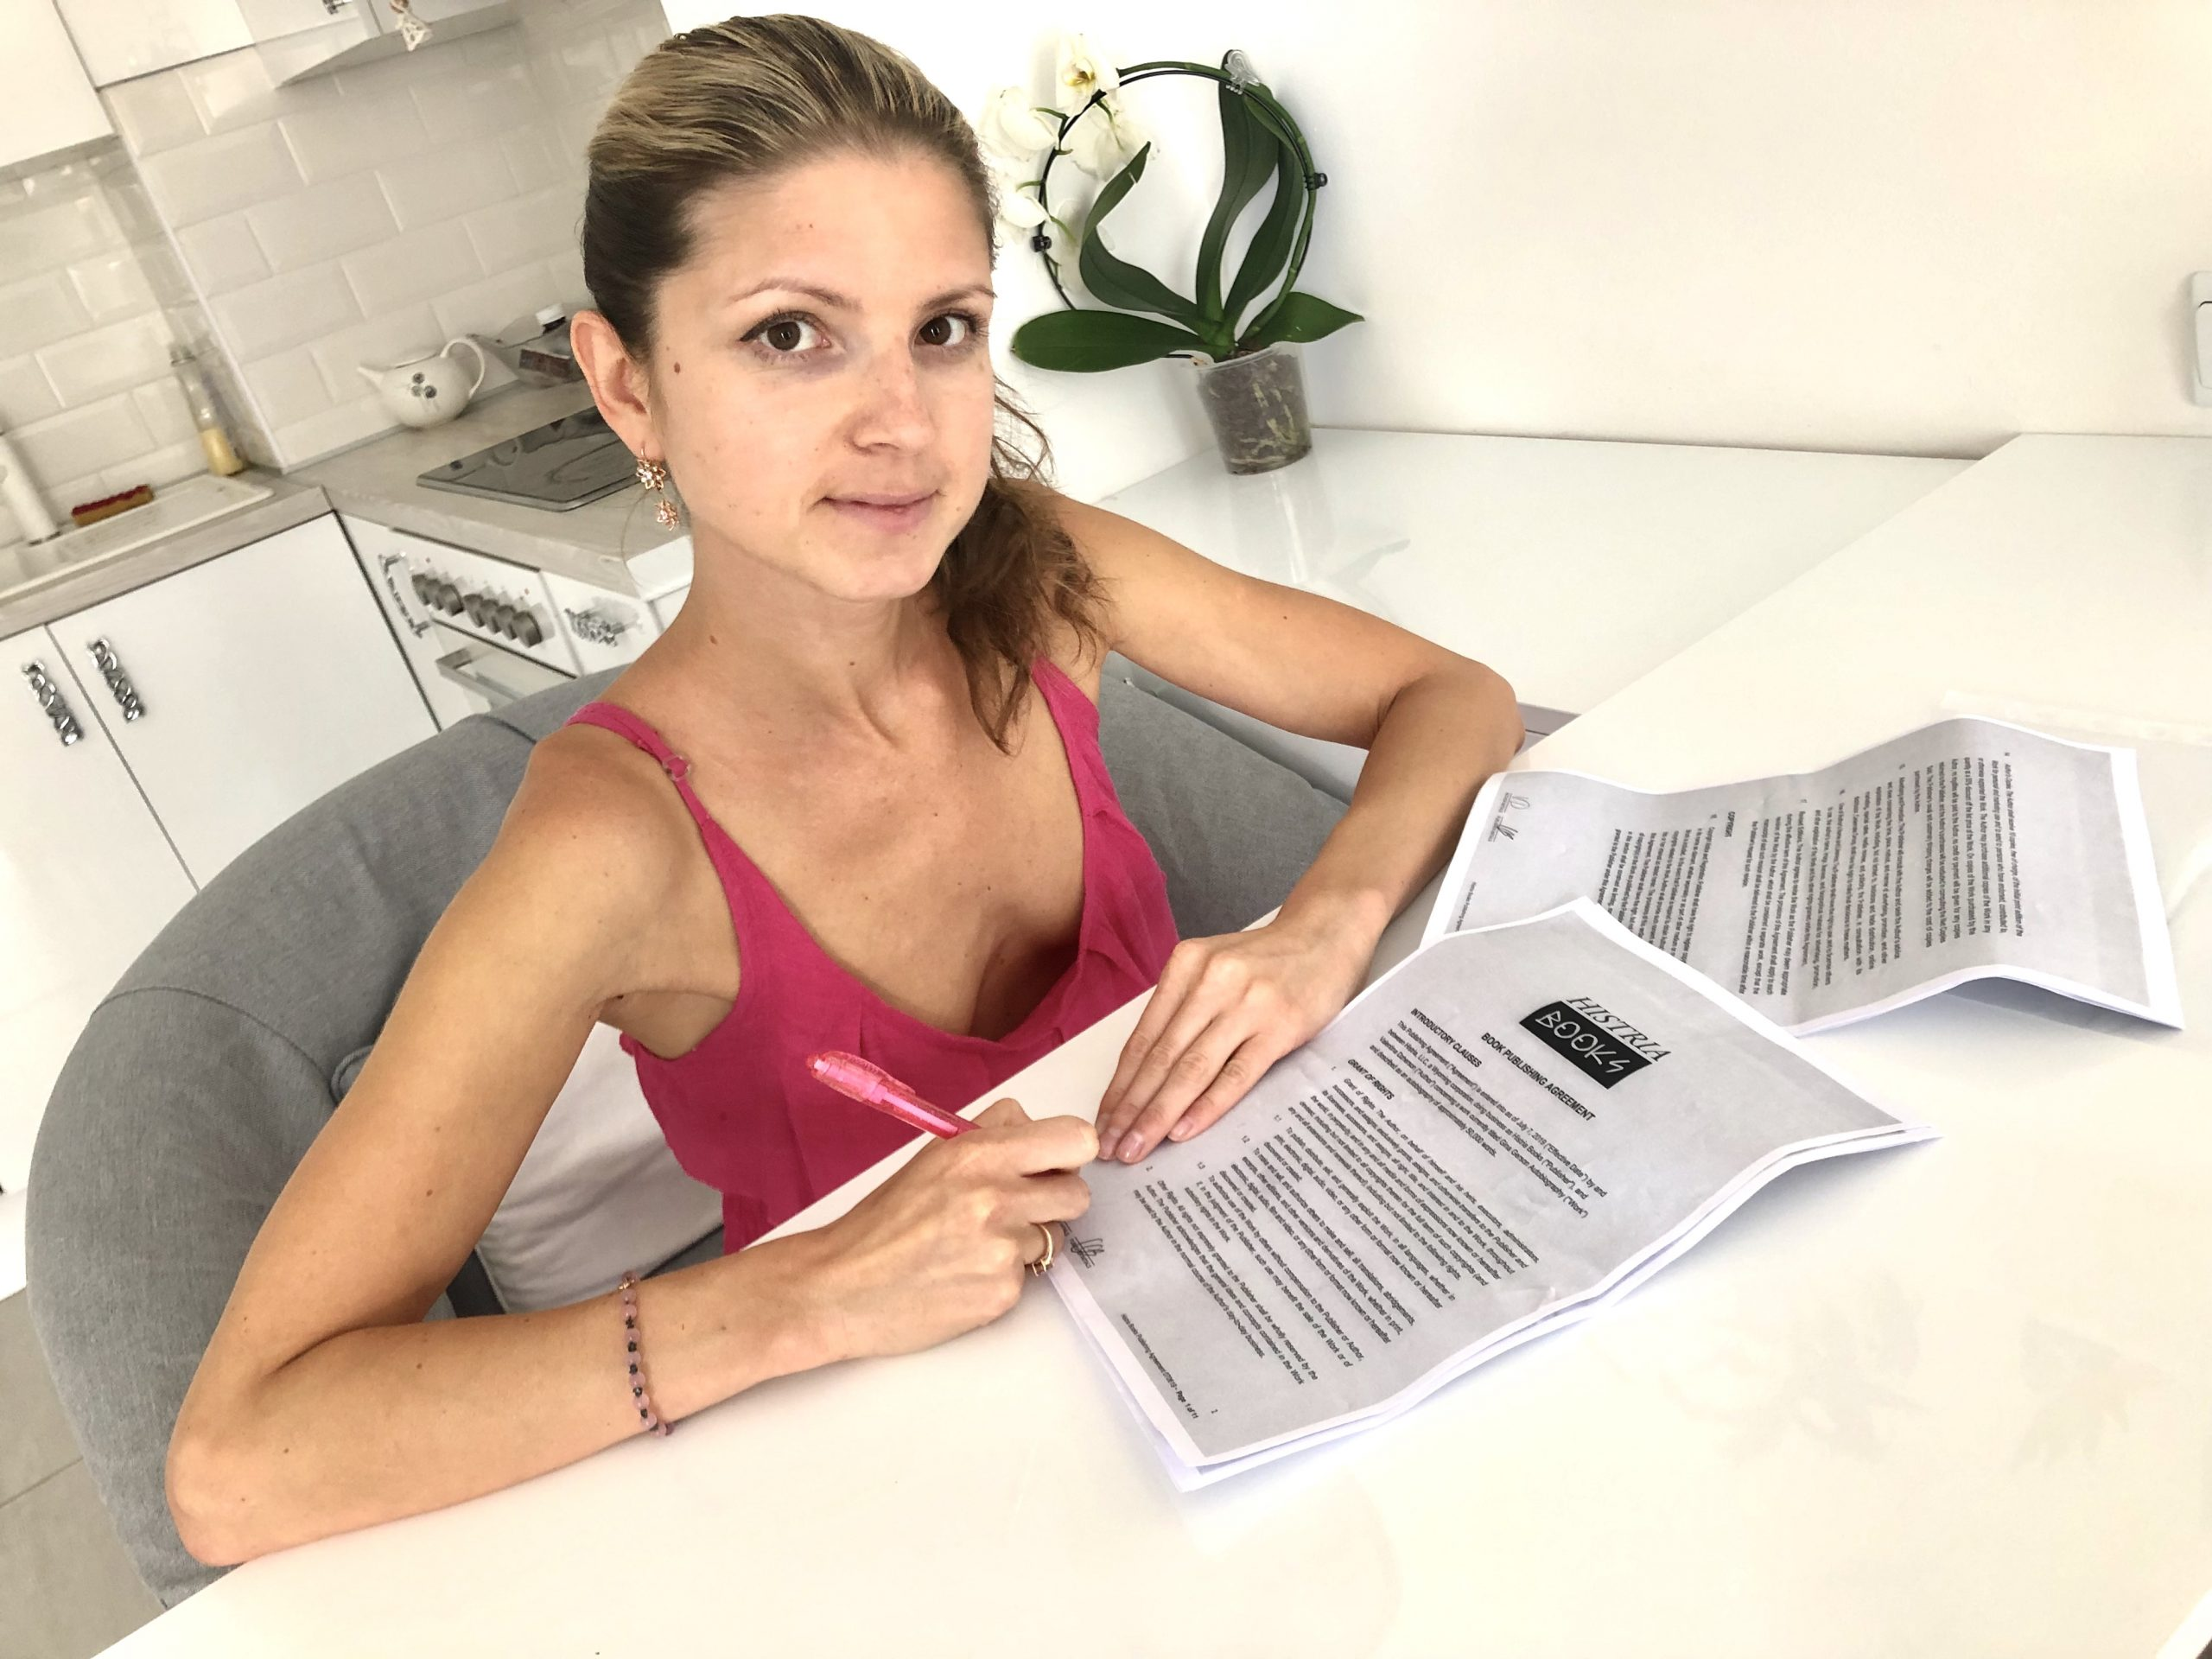 Histria Books announces signing Valentina Dzherson (Gina Gerson) to an exclusive book contract